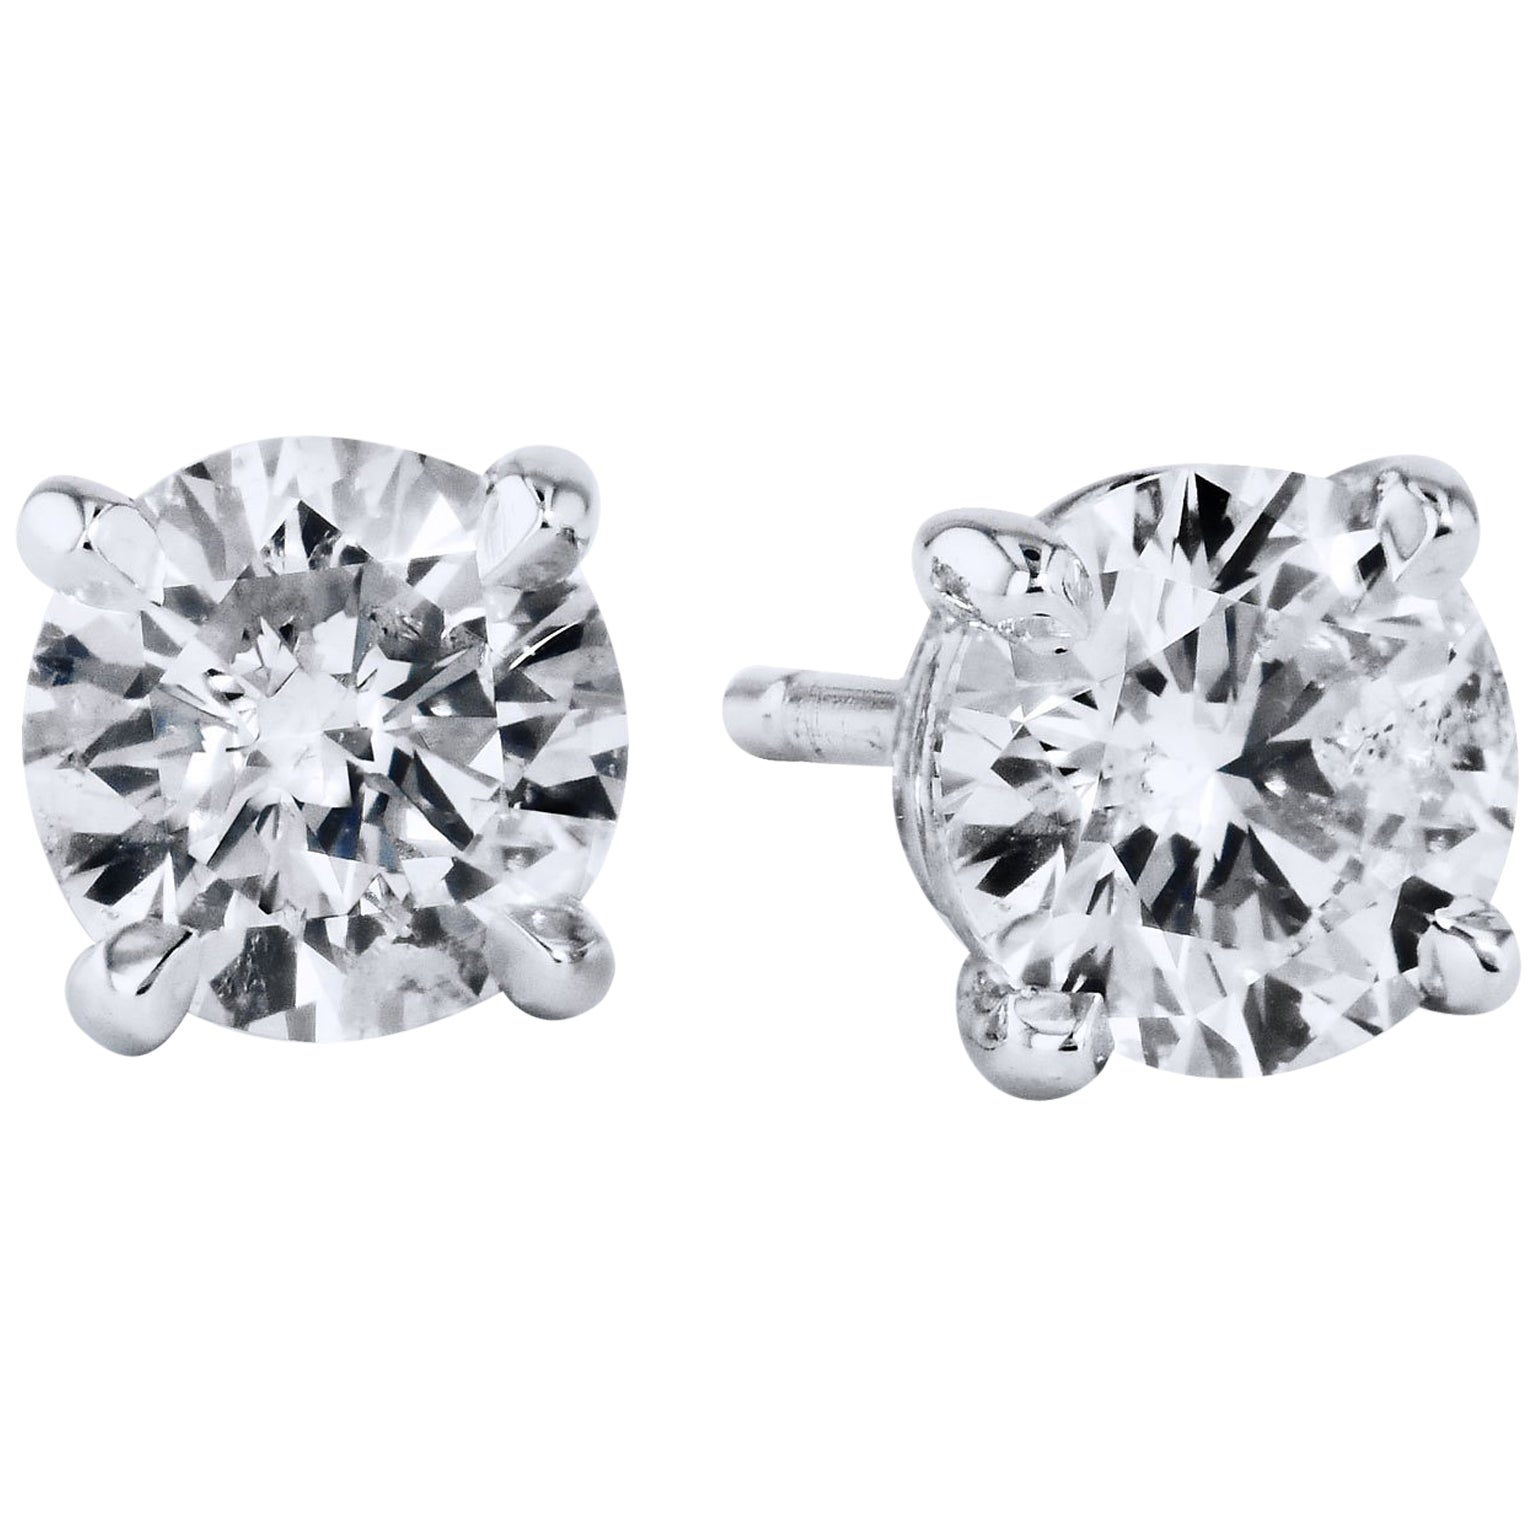 4 40 Carat GIA Diamond Solitaire Stud Earrings For Sale at 1stdibs